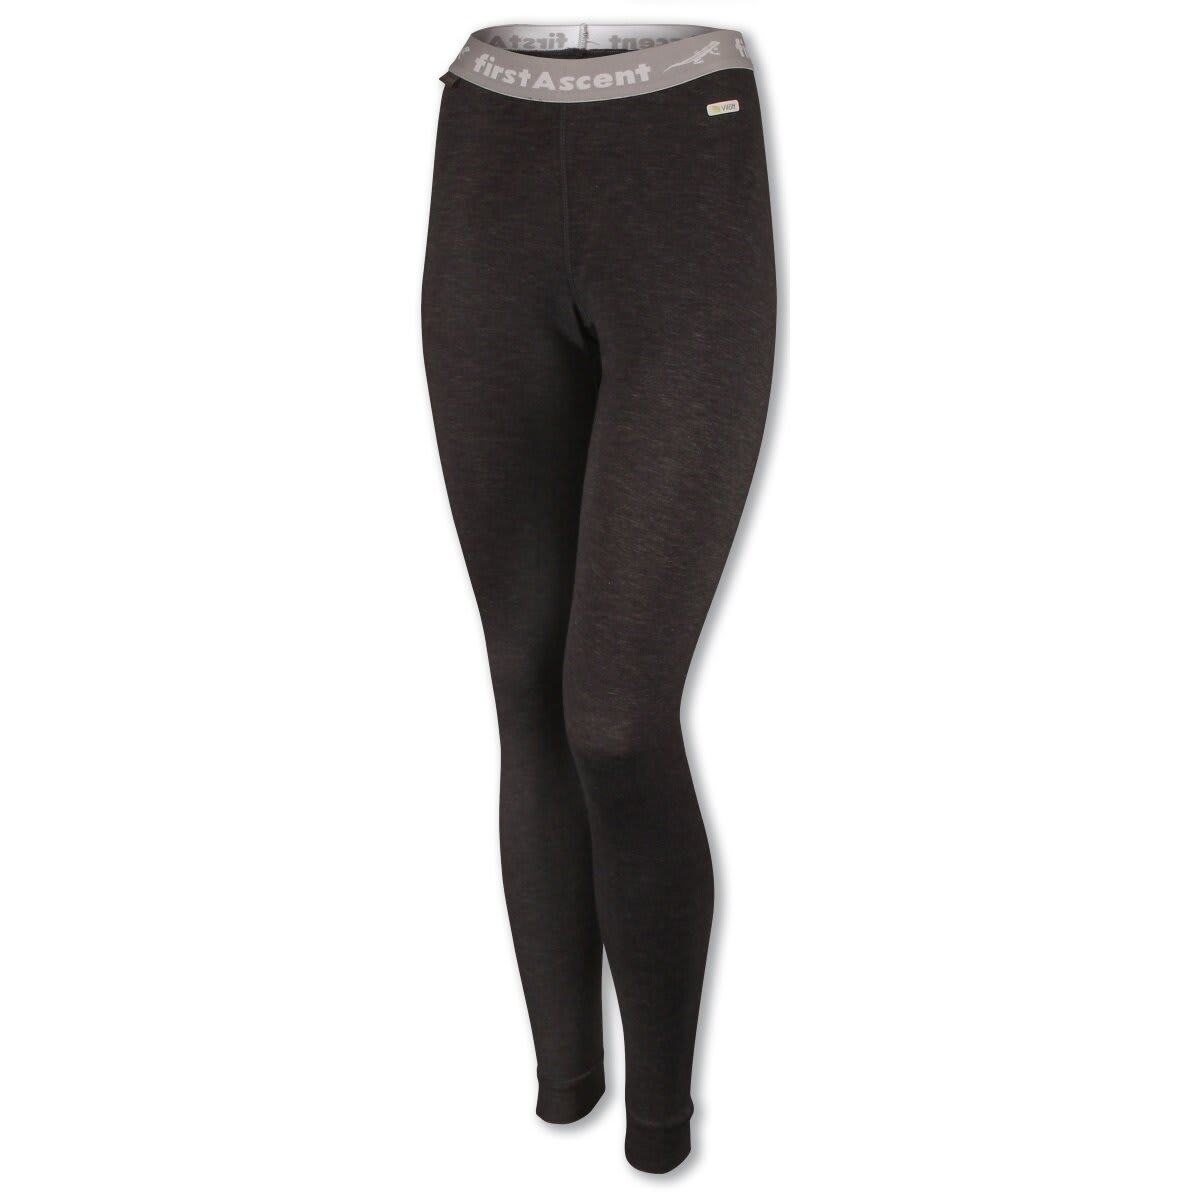 First Ascent Women's Viloft Thermal Long John